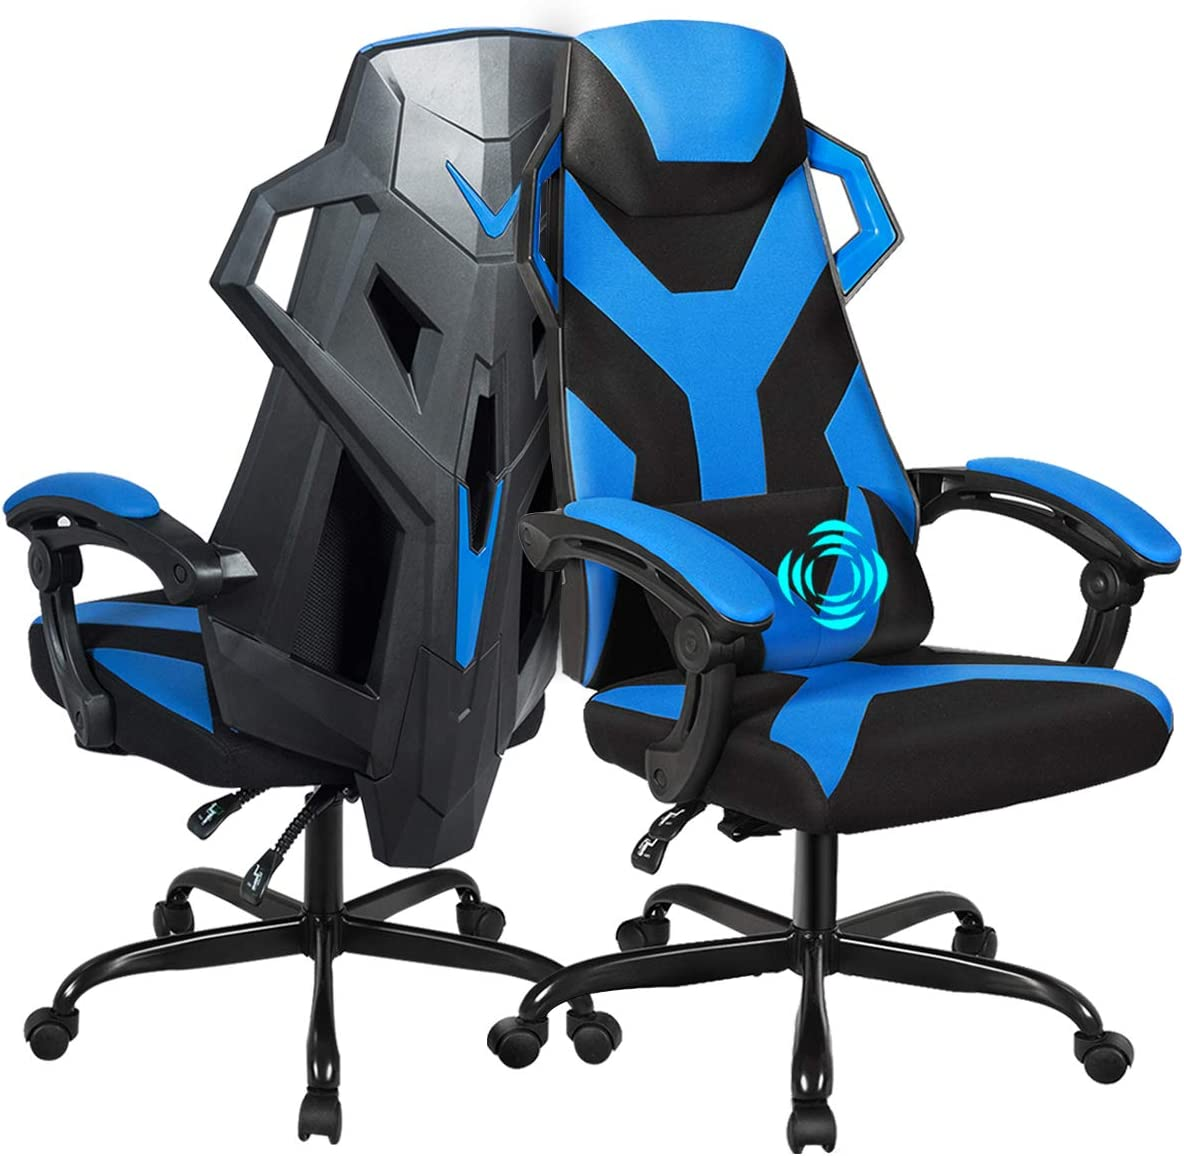 Adjustable Backrest Headrest Blue Large Size Racing Chair with USB Lumbar Pillow Armrest Giantex Massage Gaming Chair High Back Office Racing Chairs Widen Thicken Seat